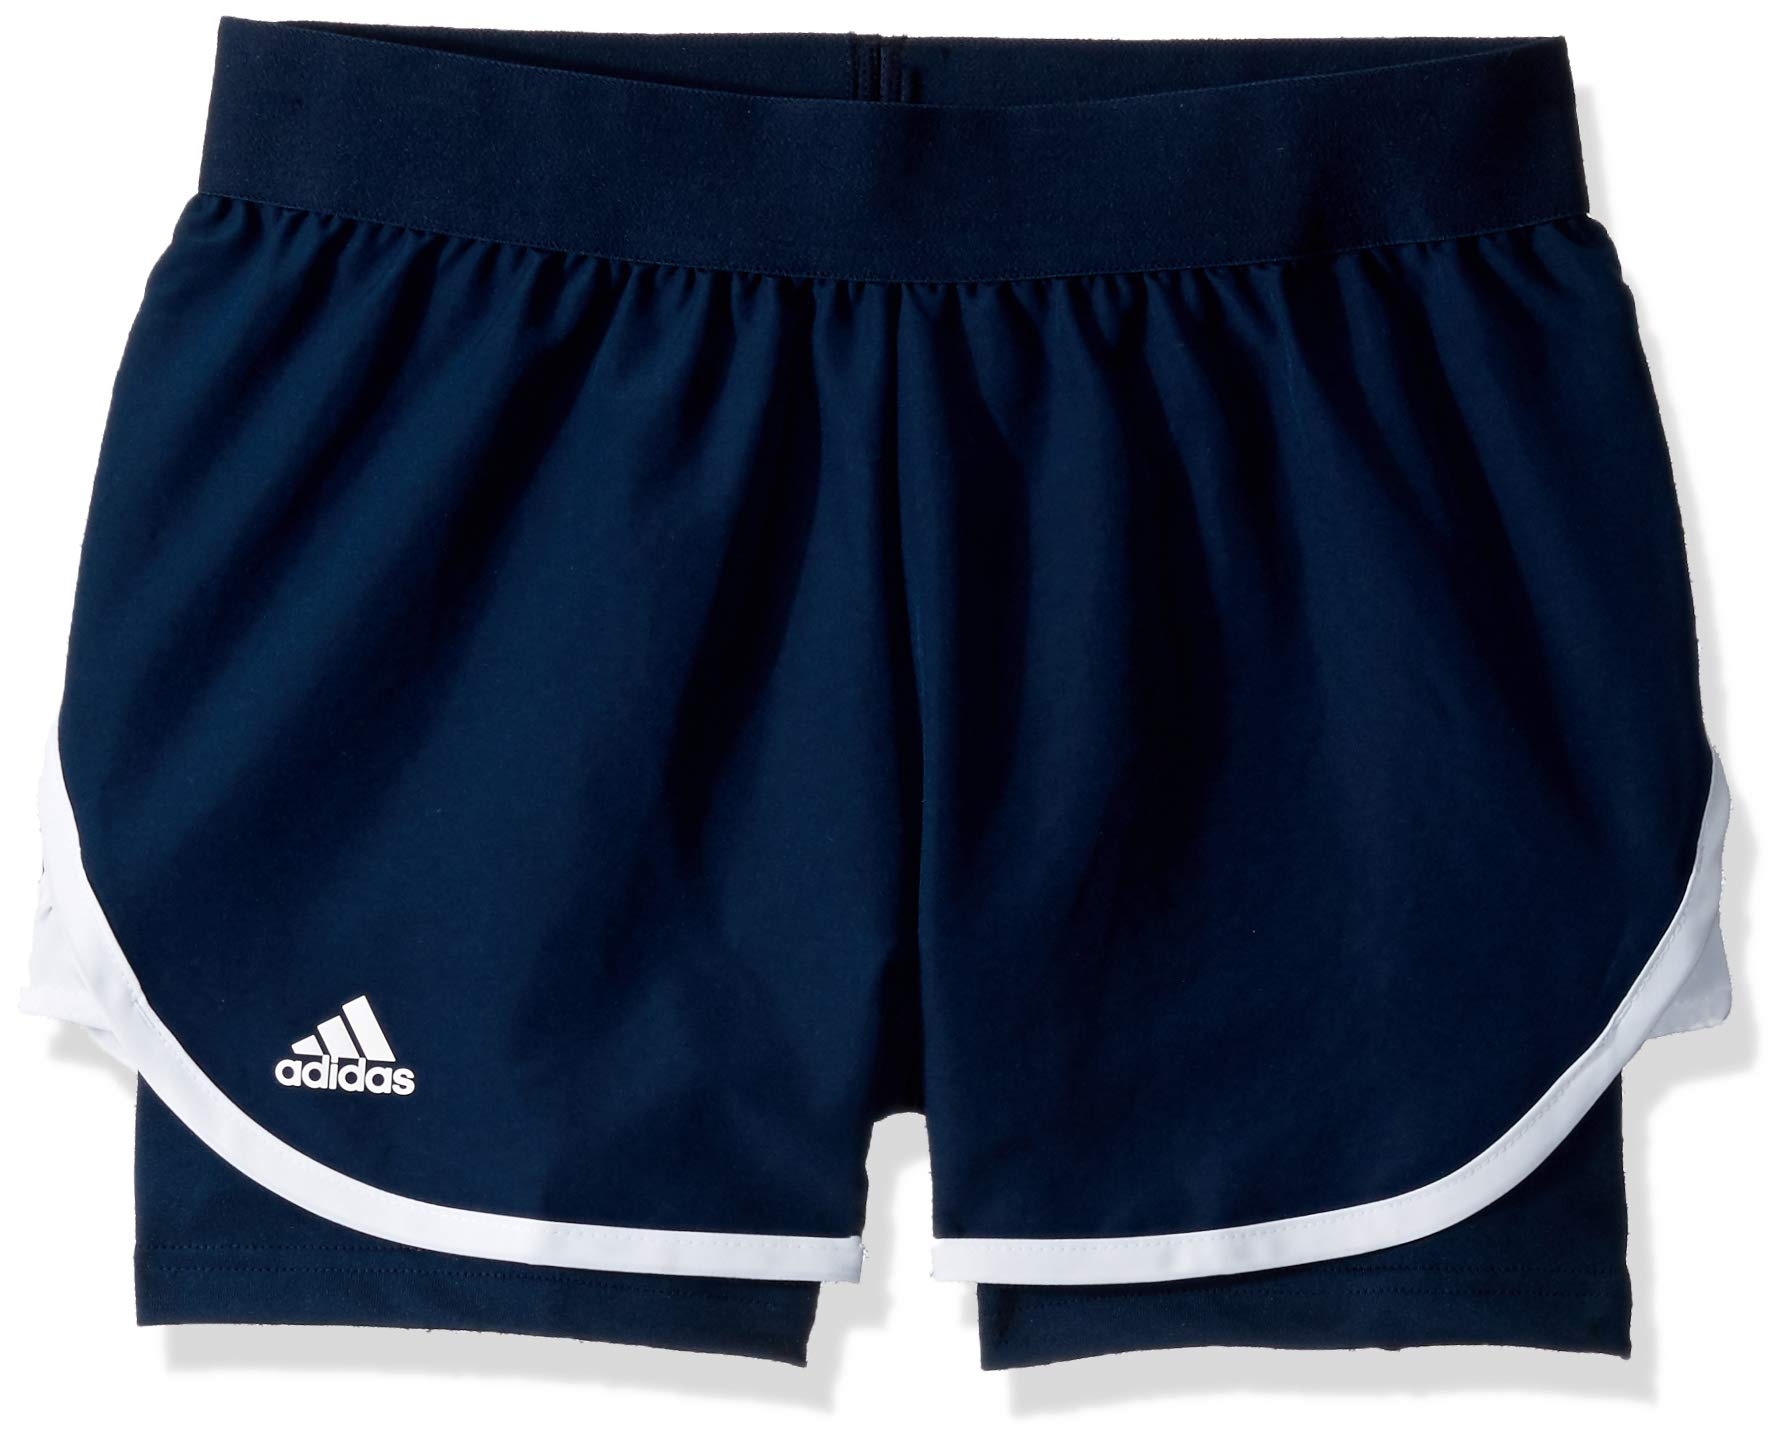 adidas Junior Girls' Club Tennis Shorts, Collegiate Navy, X-Small by adidas